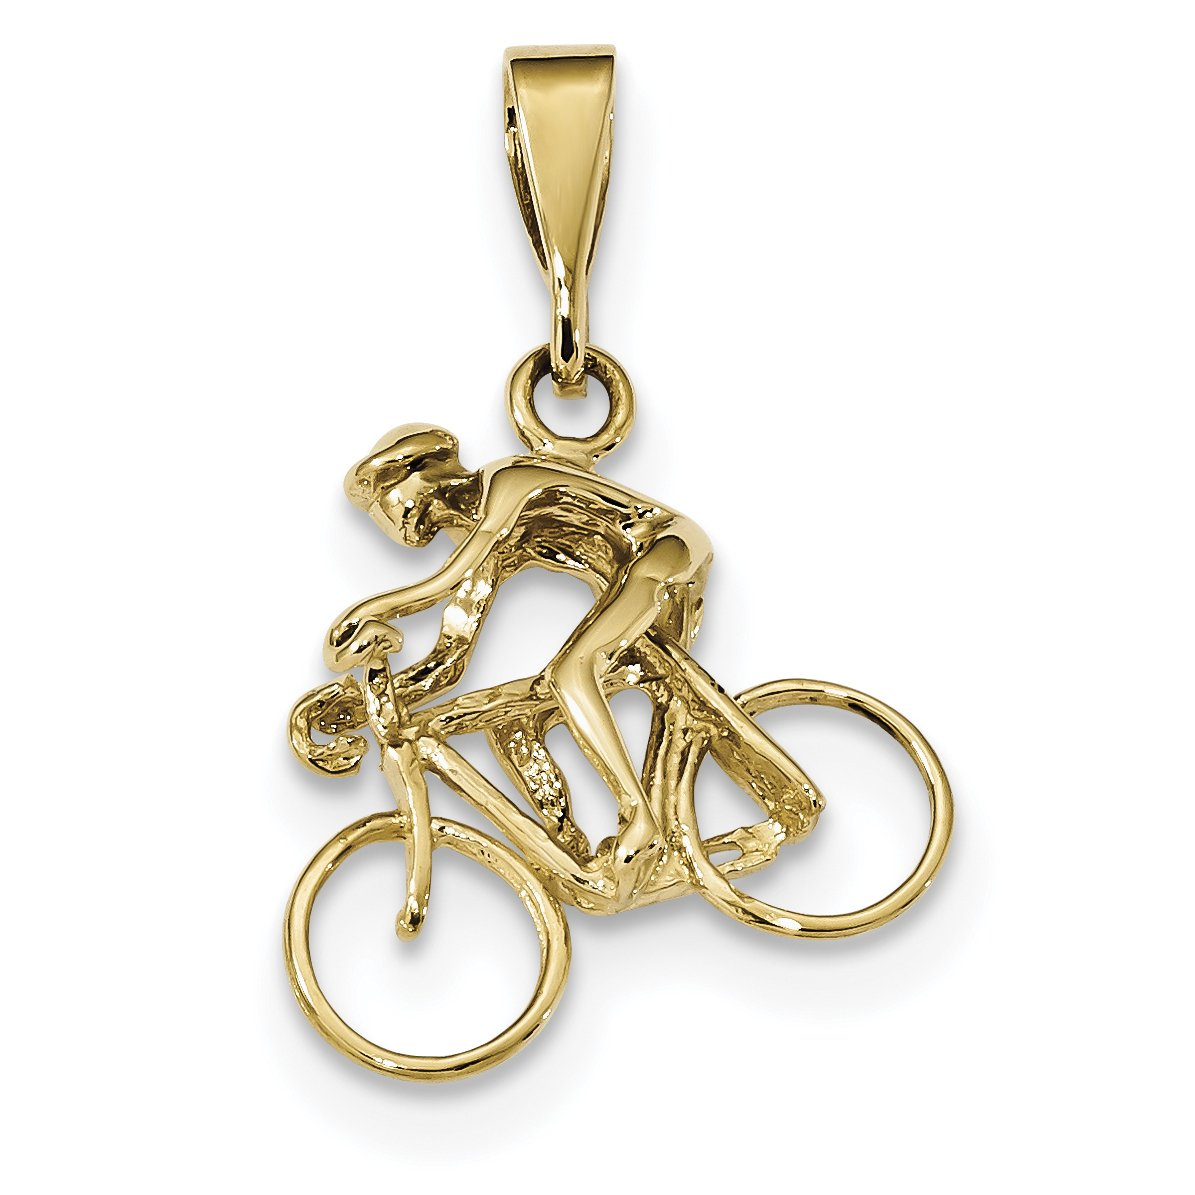 ICE CARATS 14k Yellow Gold Bicyclist Pendant Charm Necklace Travel Transportation Fine Jewelry Gift For Women Heart